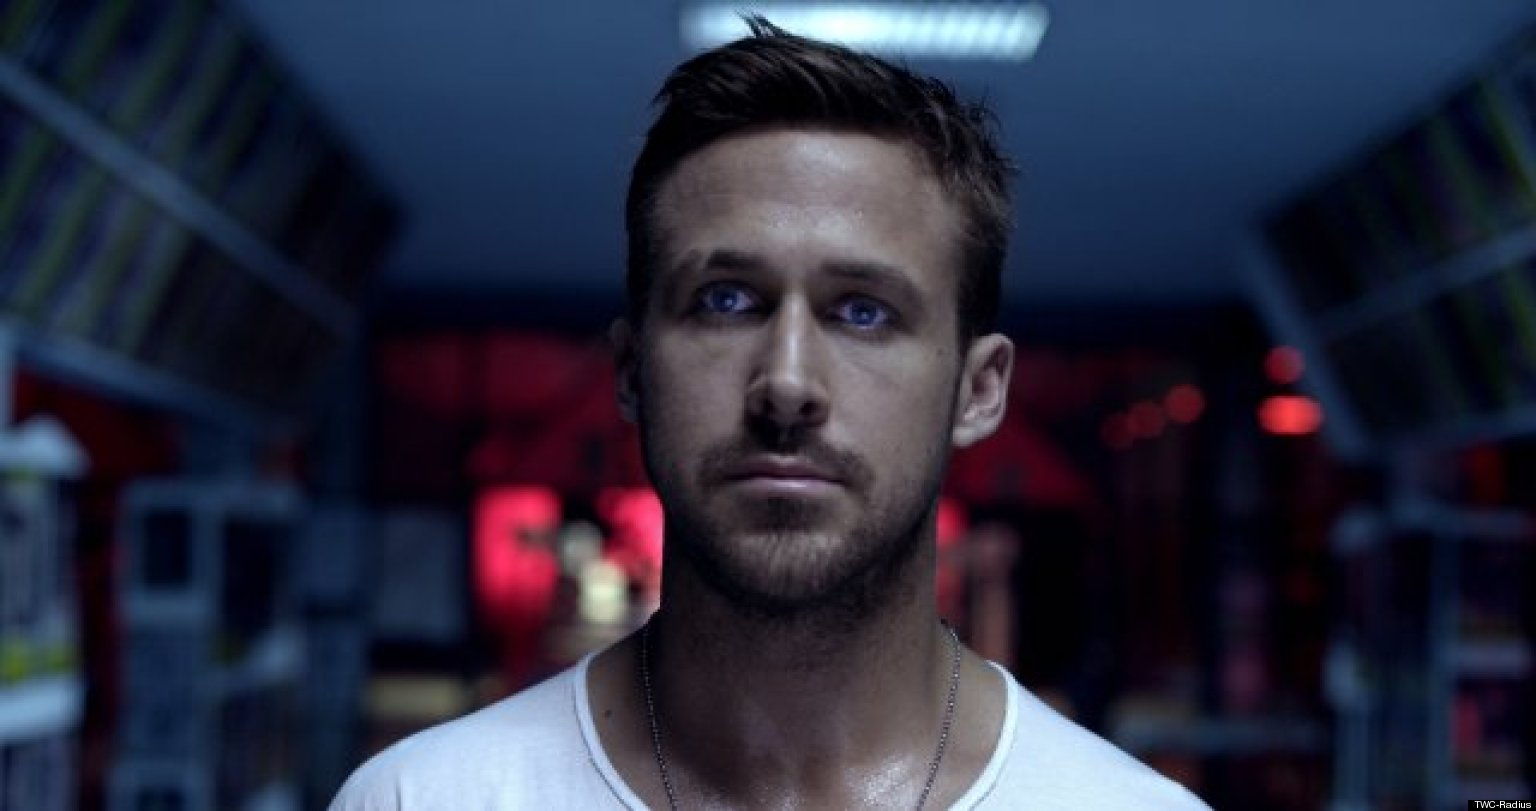 'I Felt Violated': Critics SLAM Ryan Gosling's New Film